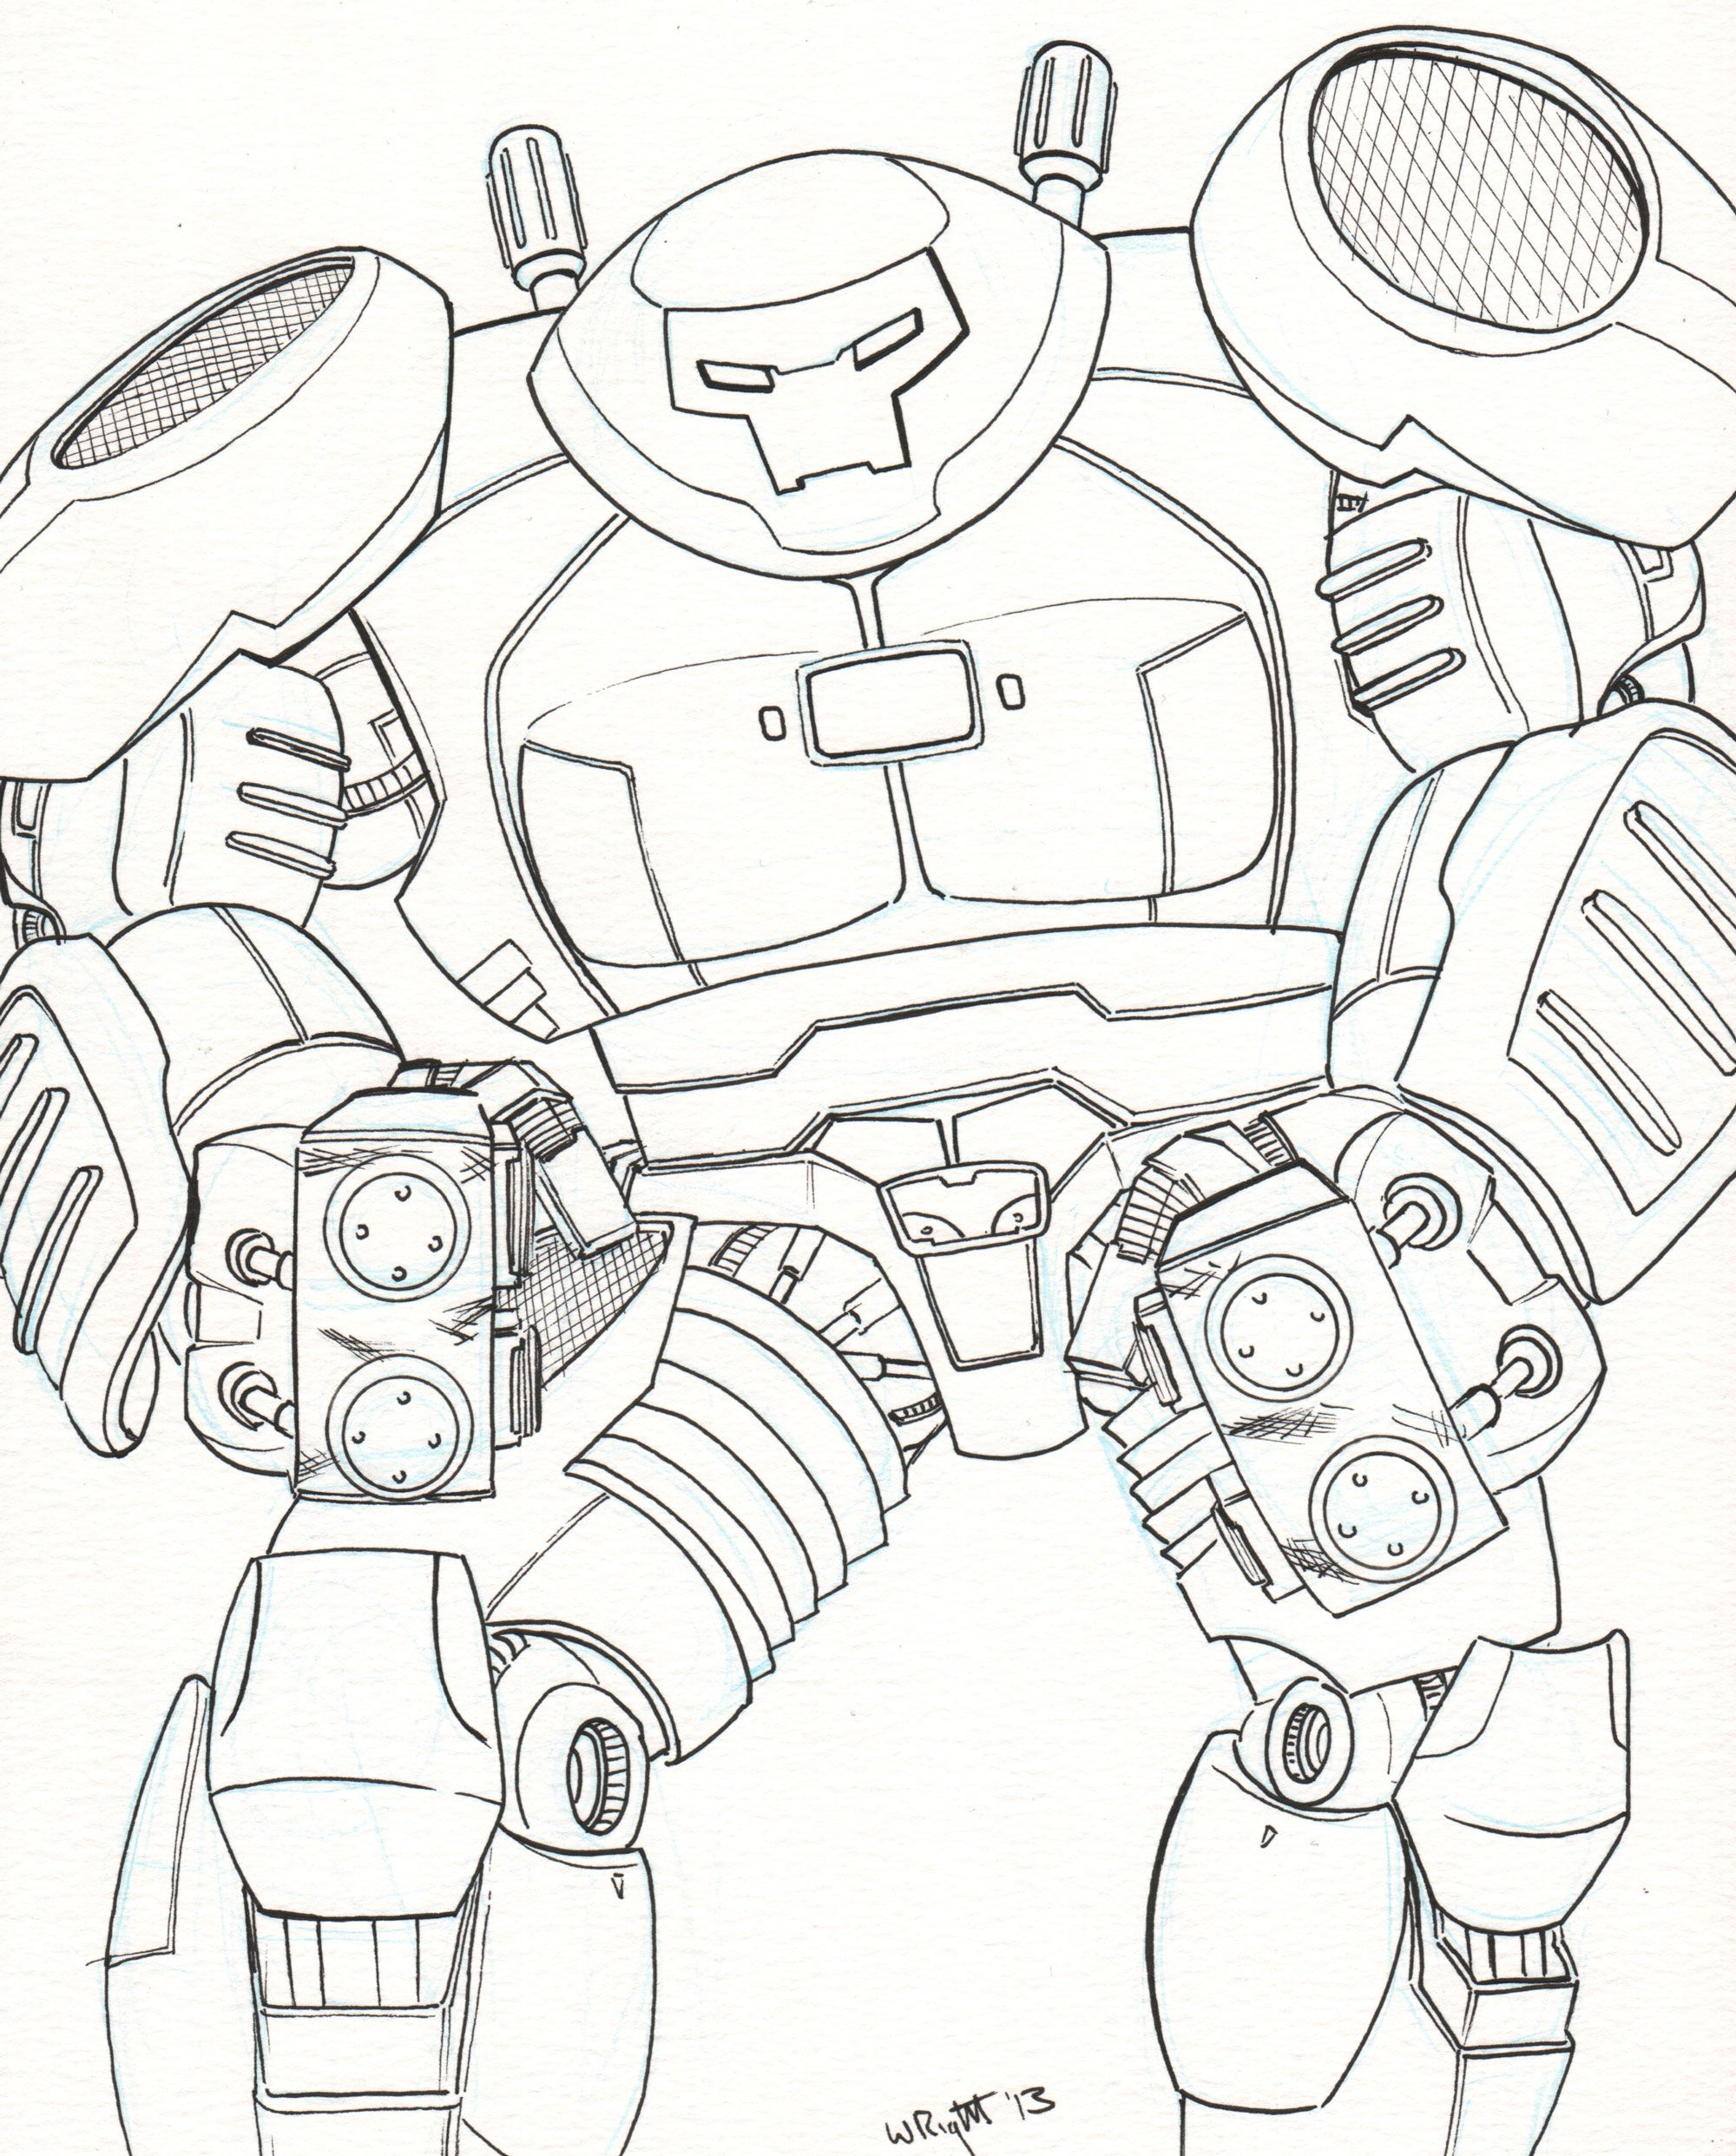 Iron Man Hulkbuster Vs Hulk Coloring Pages Sketch Page